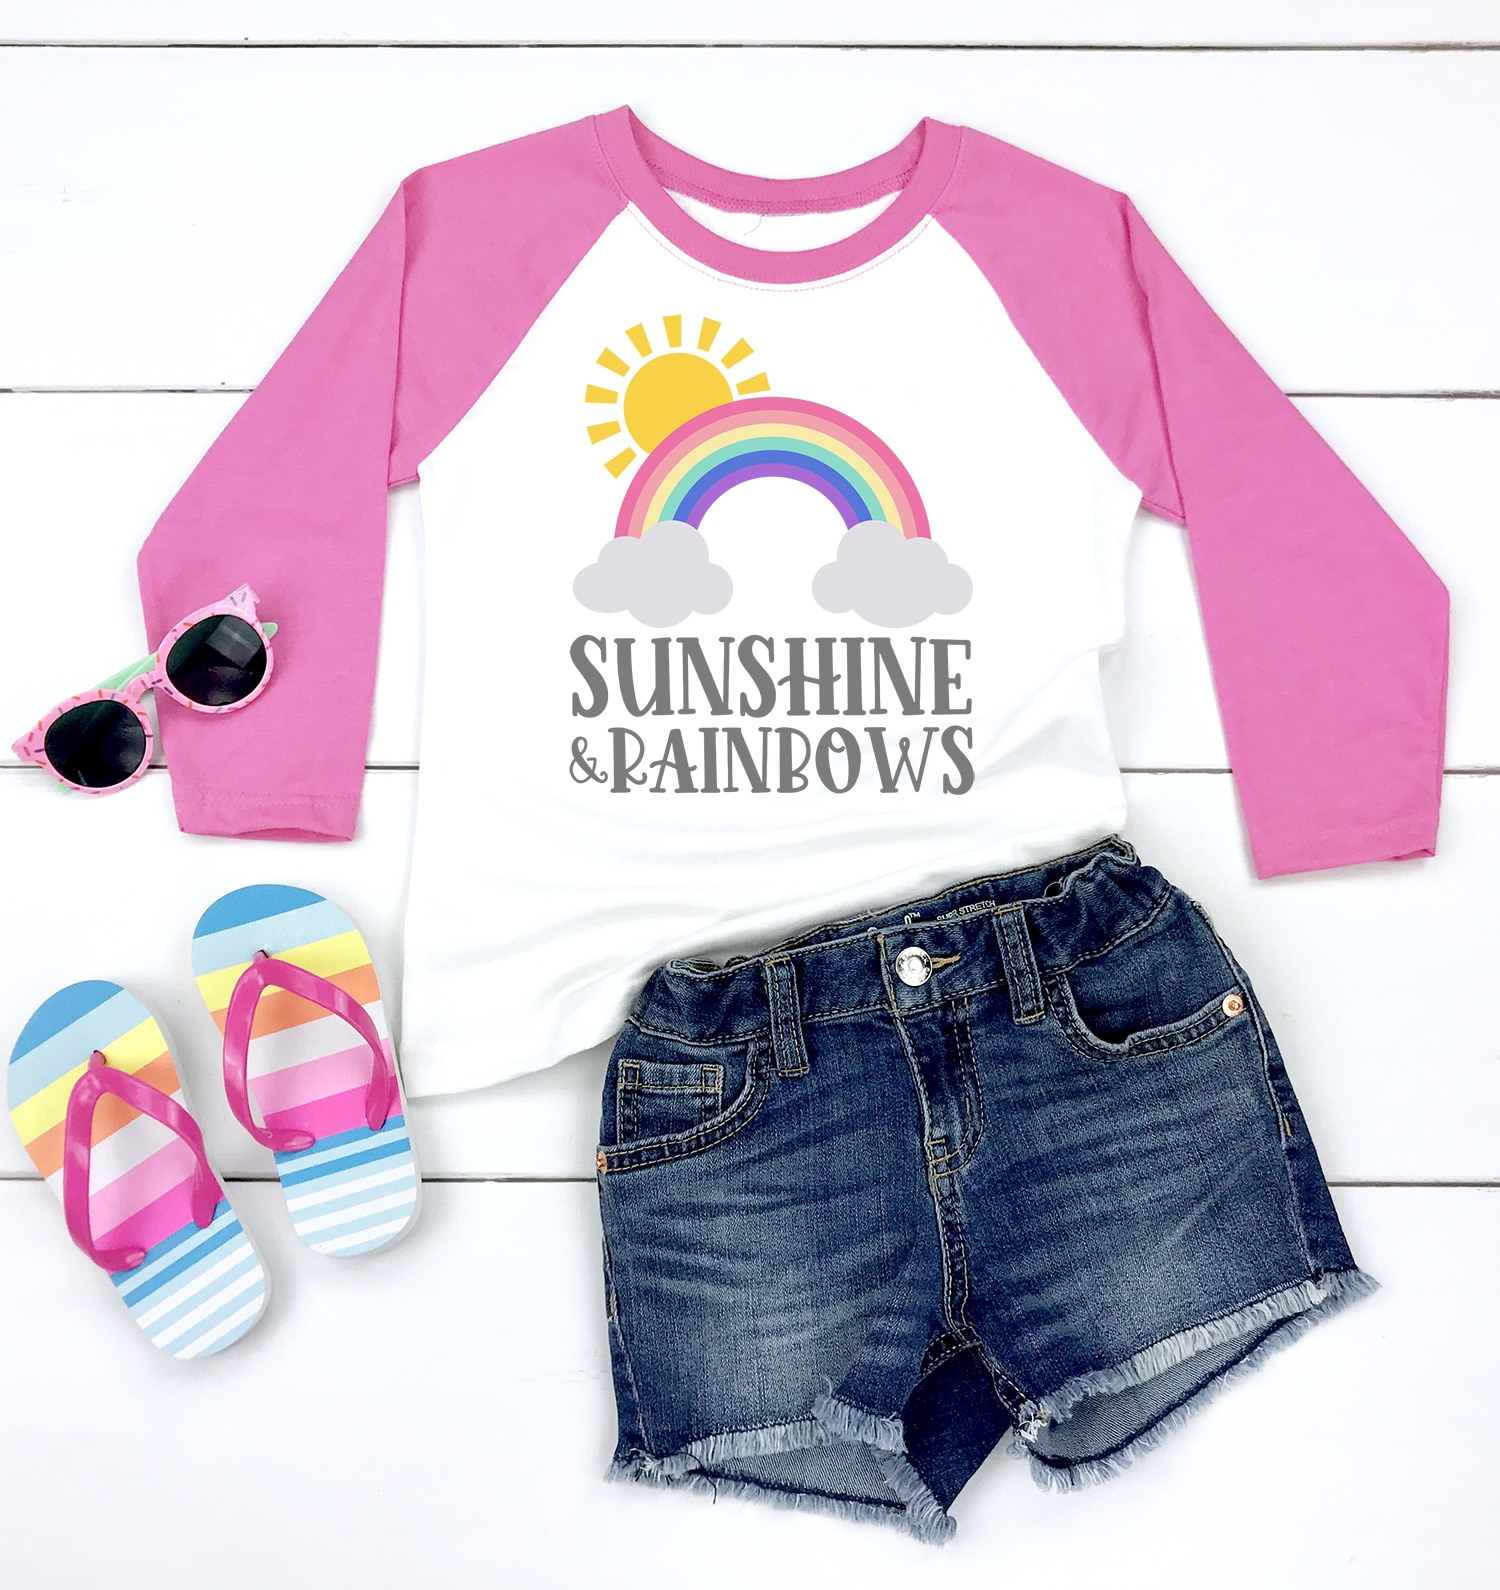 Sunshine and Rainbows pink raglan shirt with denim shorts, striped flip flops, and pink sunglasses